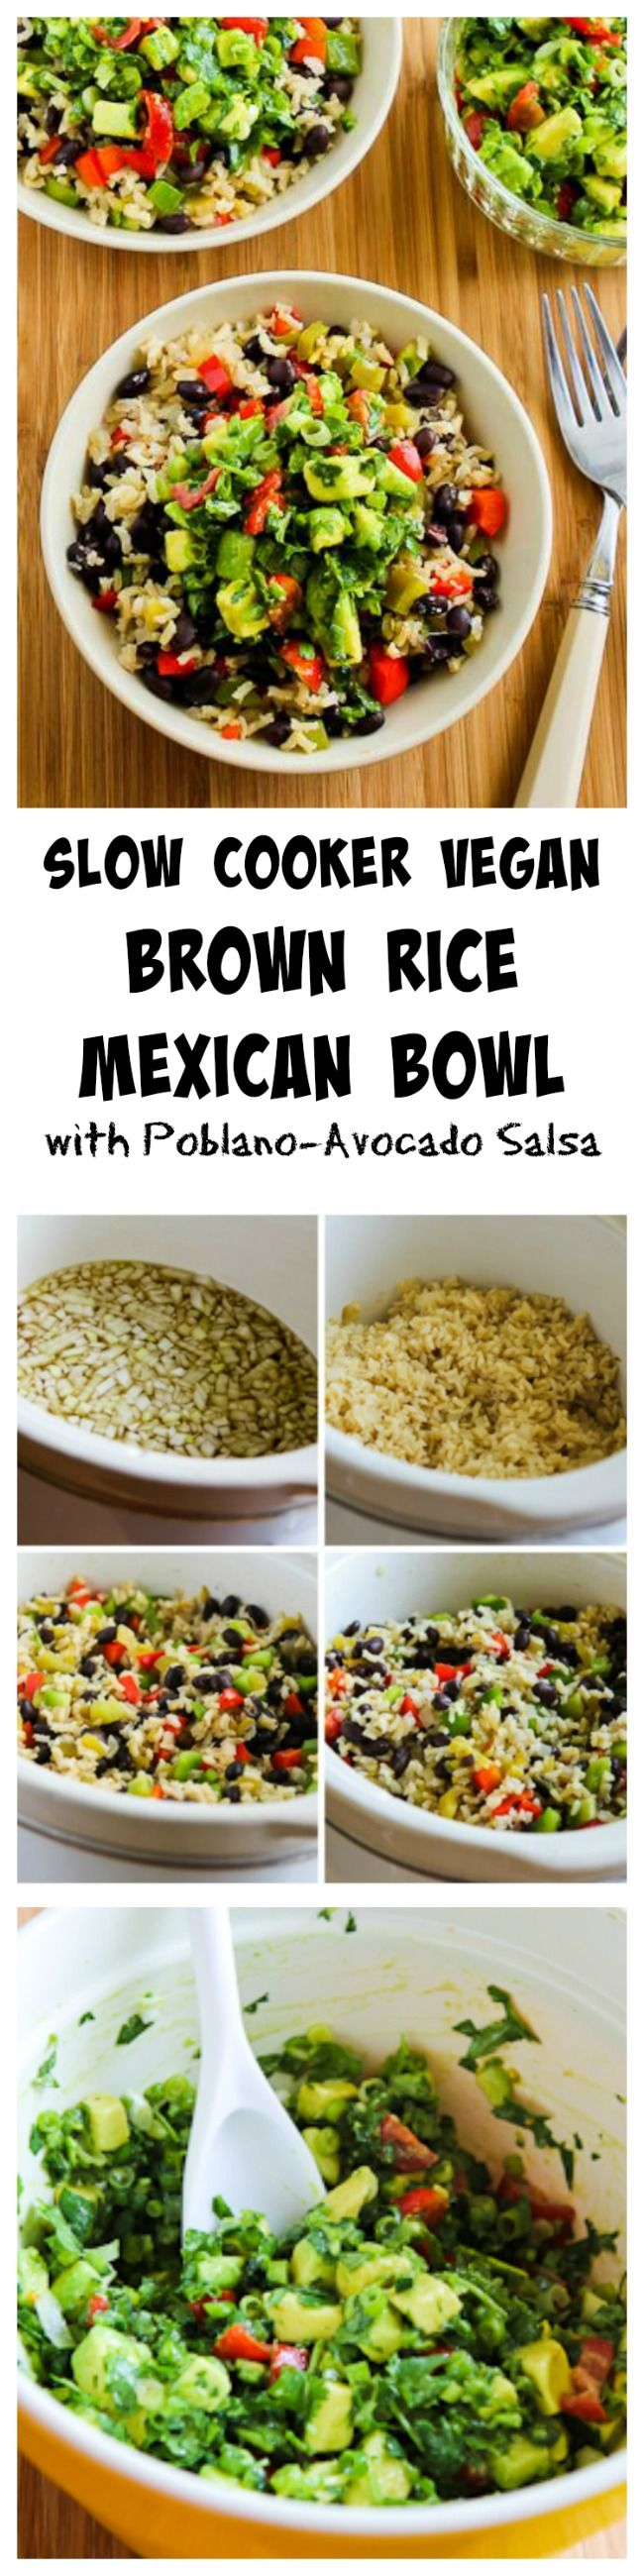 Slow Cooker Vegan Brown Rice Mexican Bowl has black beans and red bell pepper, and it's served with poblano-avocado salsa.  This is a delicious meal for Cinco de Mayo or just as a healthy dinner any time of year.  #SlowCooker #Vegan [from KalynsKitchen.com]